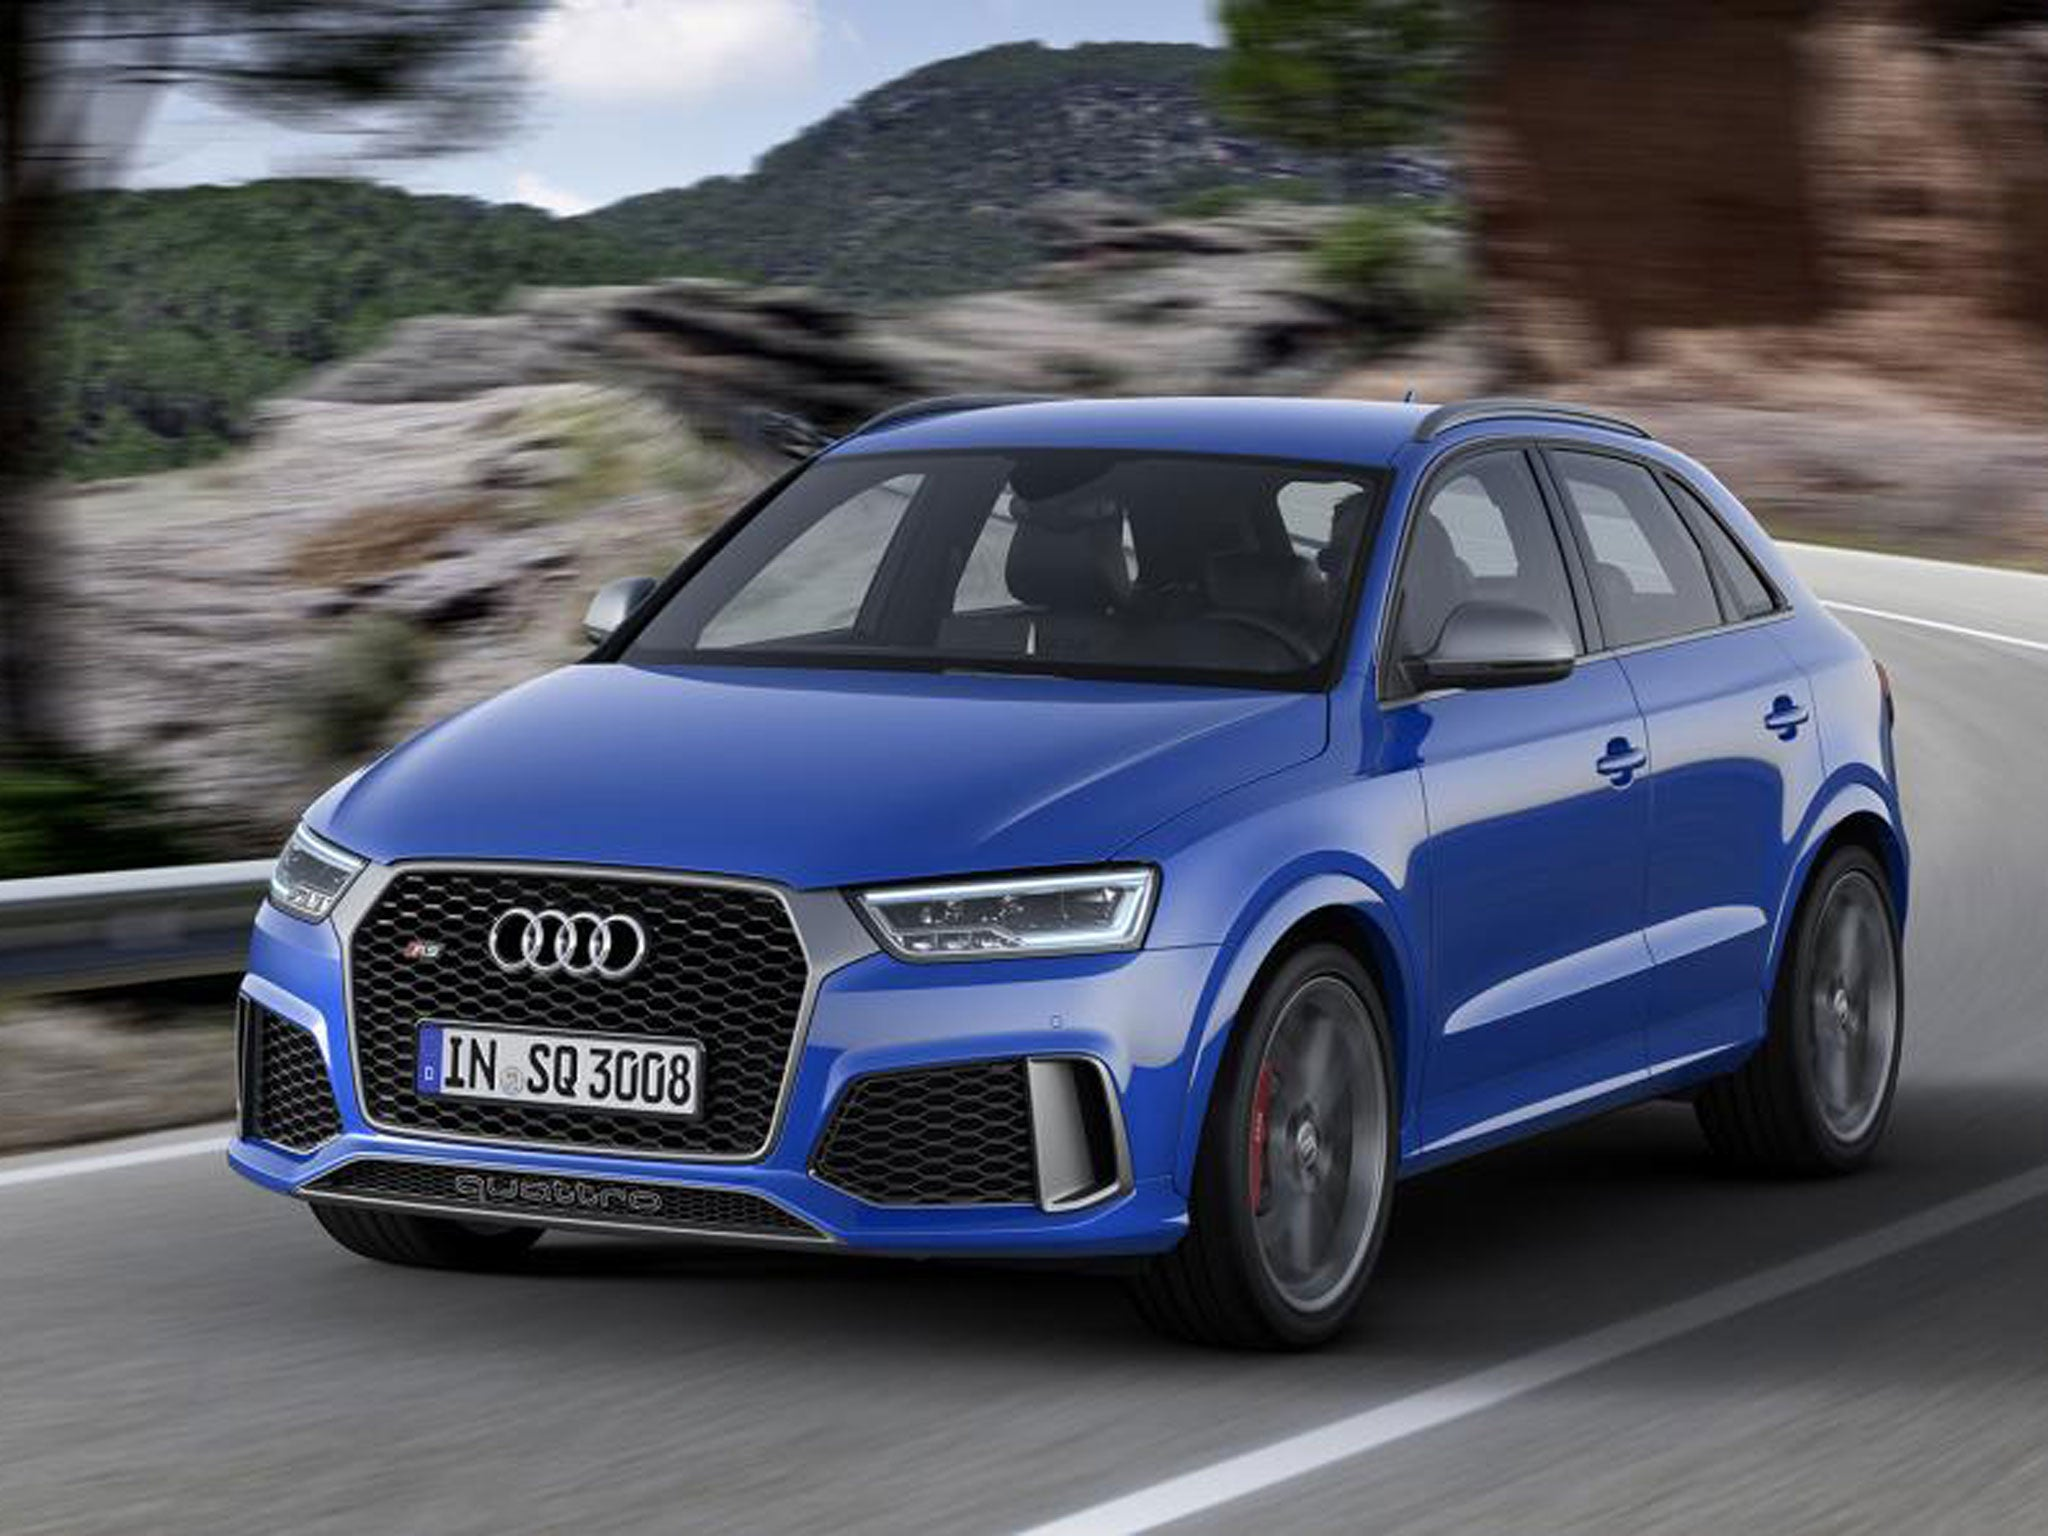 Audi Latest News Breaking Stories And Comment The Independent - Audi news